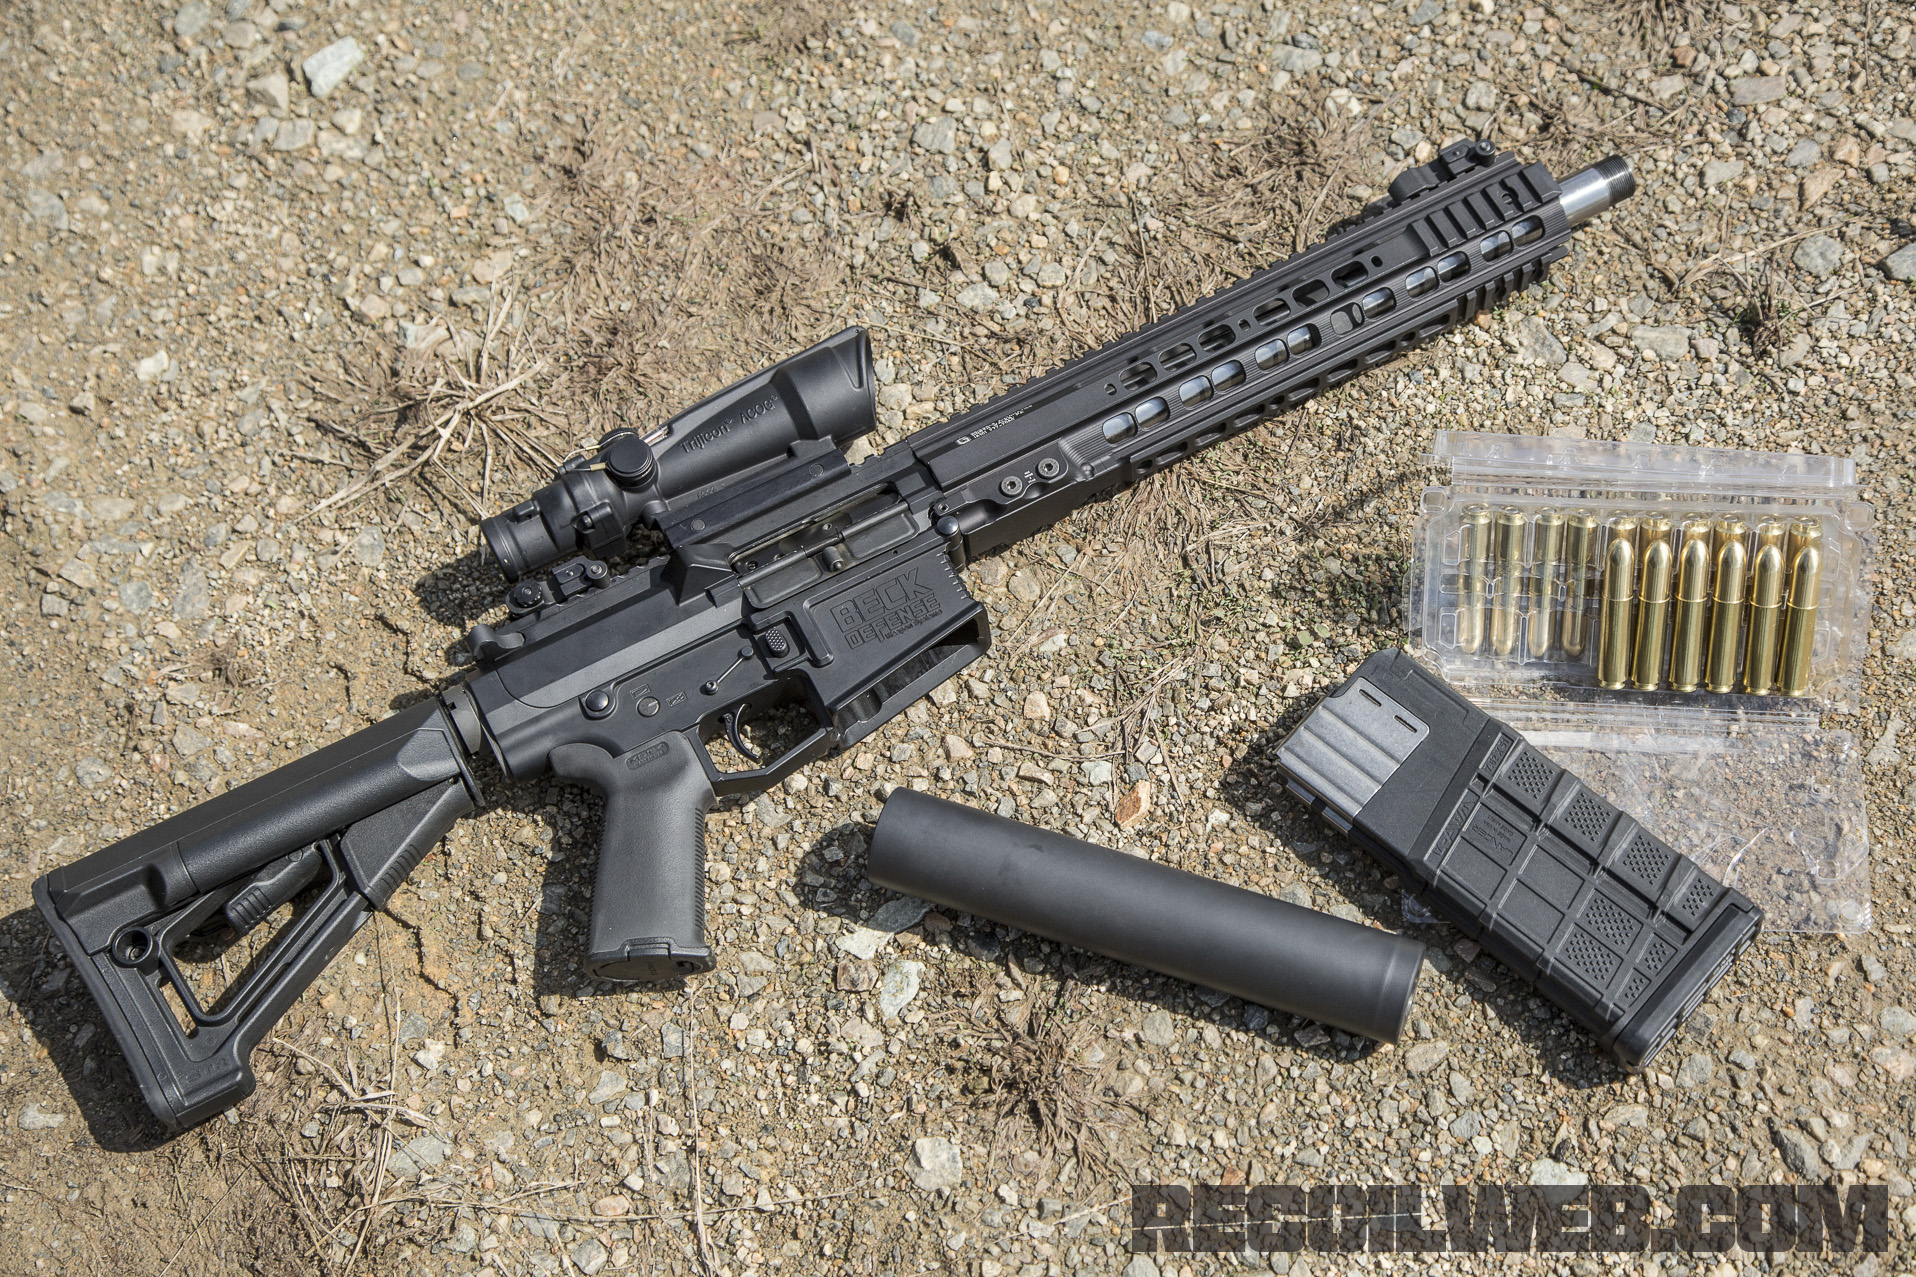 50 cal ar brought to you by beck defense and lancer